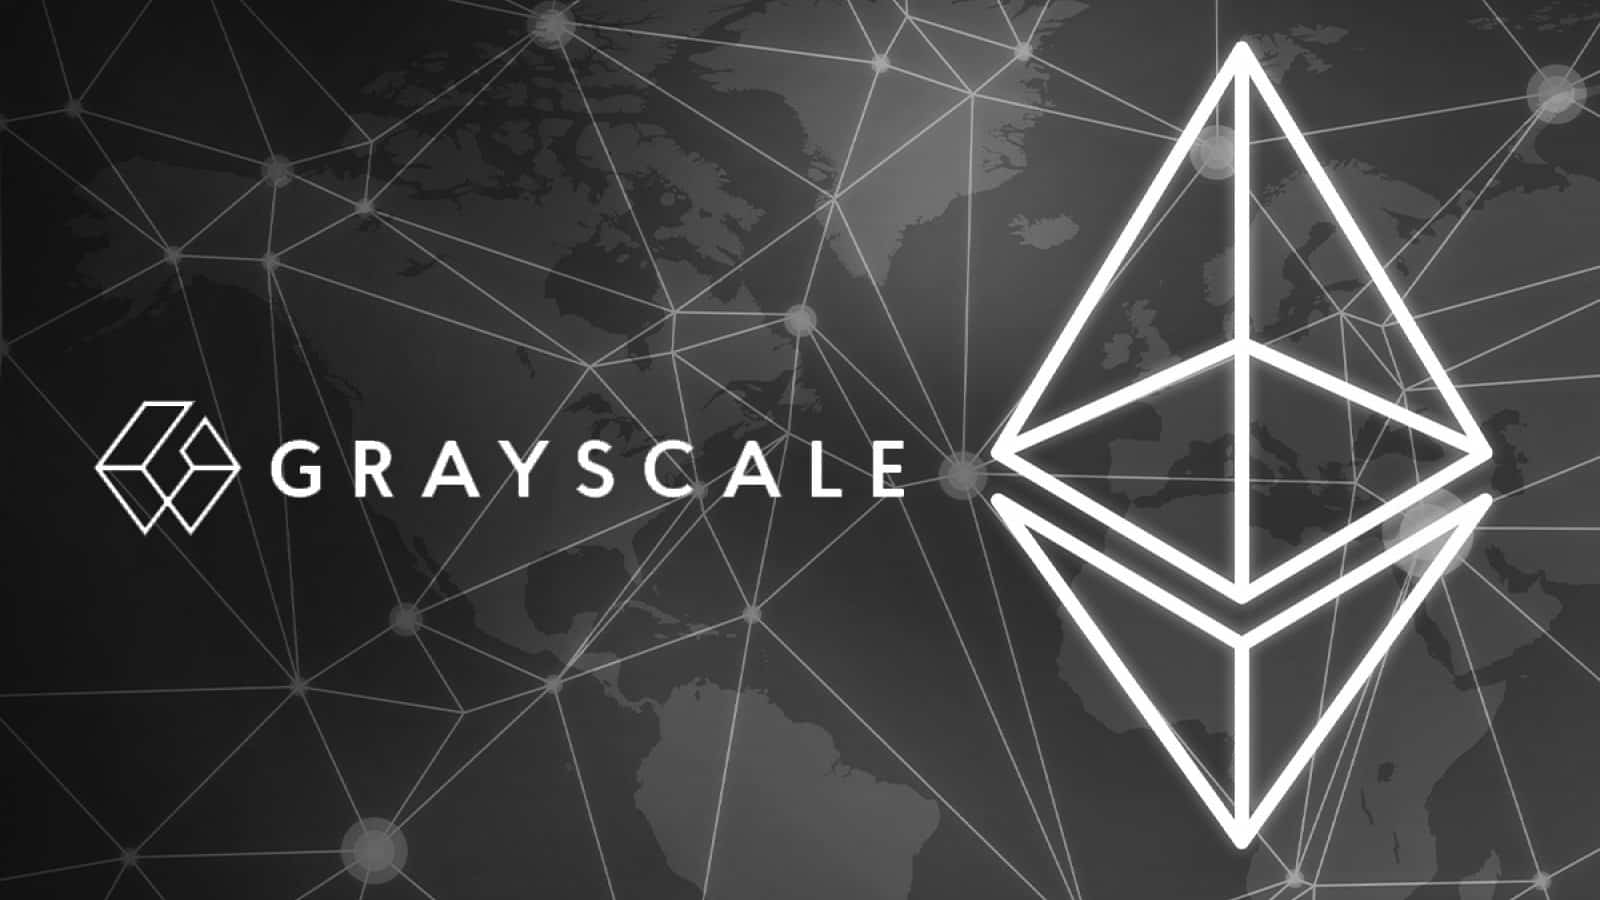 Grayscale Adds Cardano (ADA) To DLC Fund - Somag News